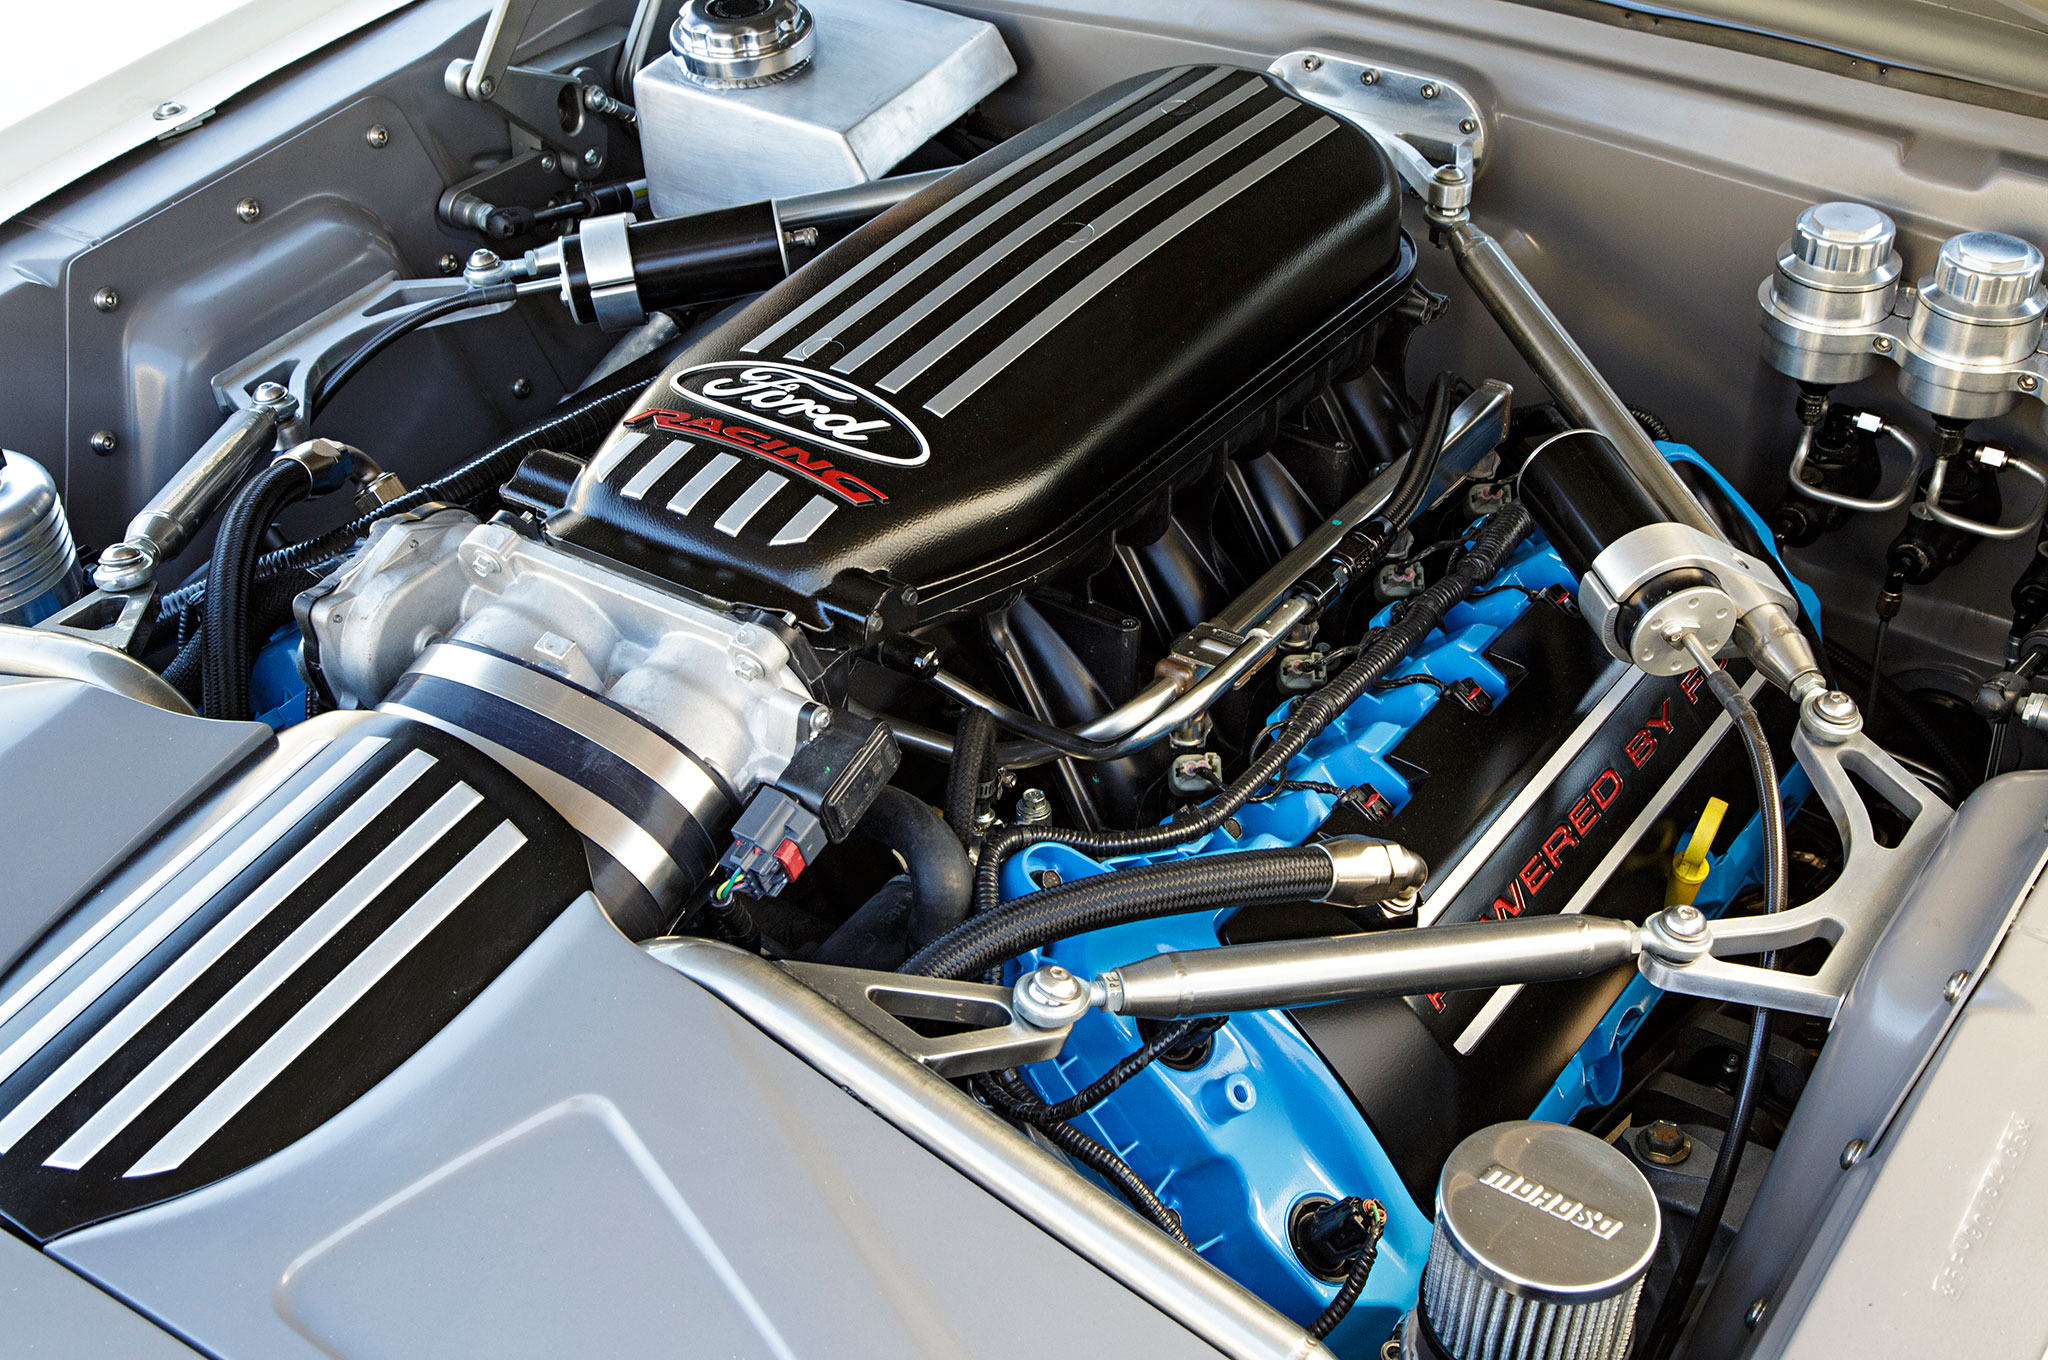 1965 Ford Mustang 302 Engine